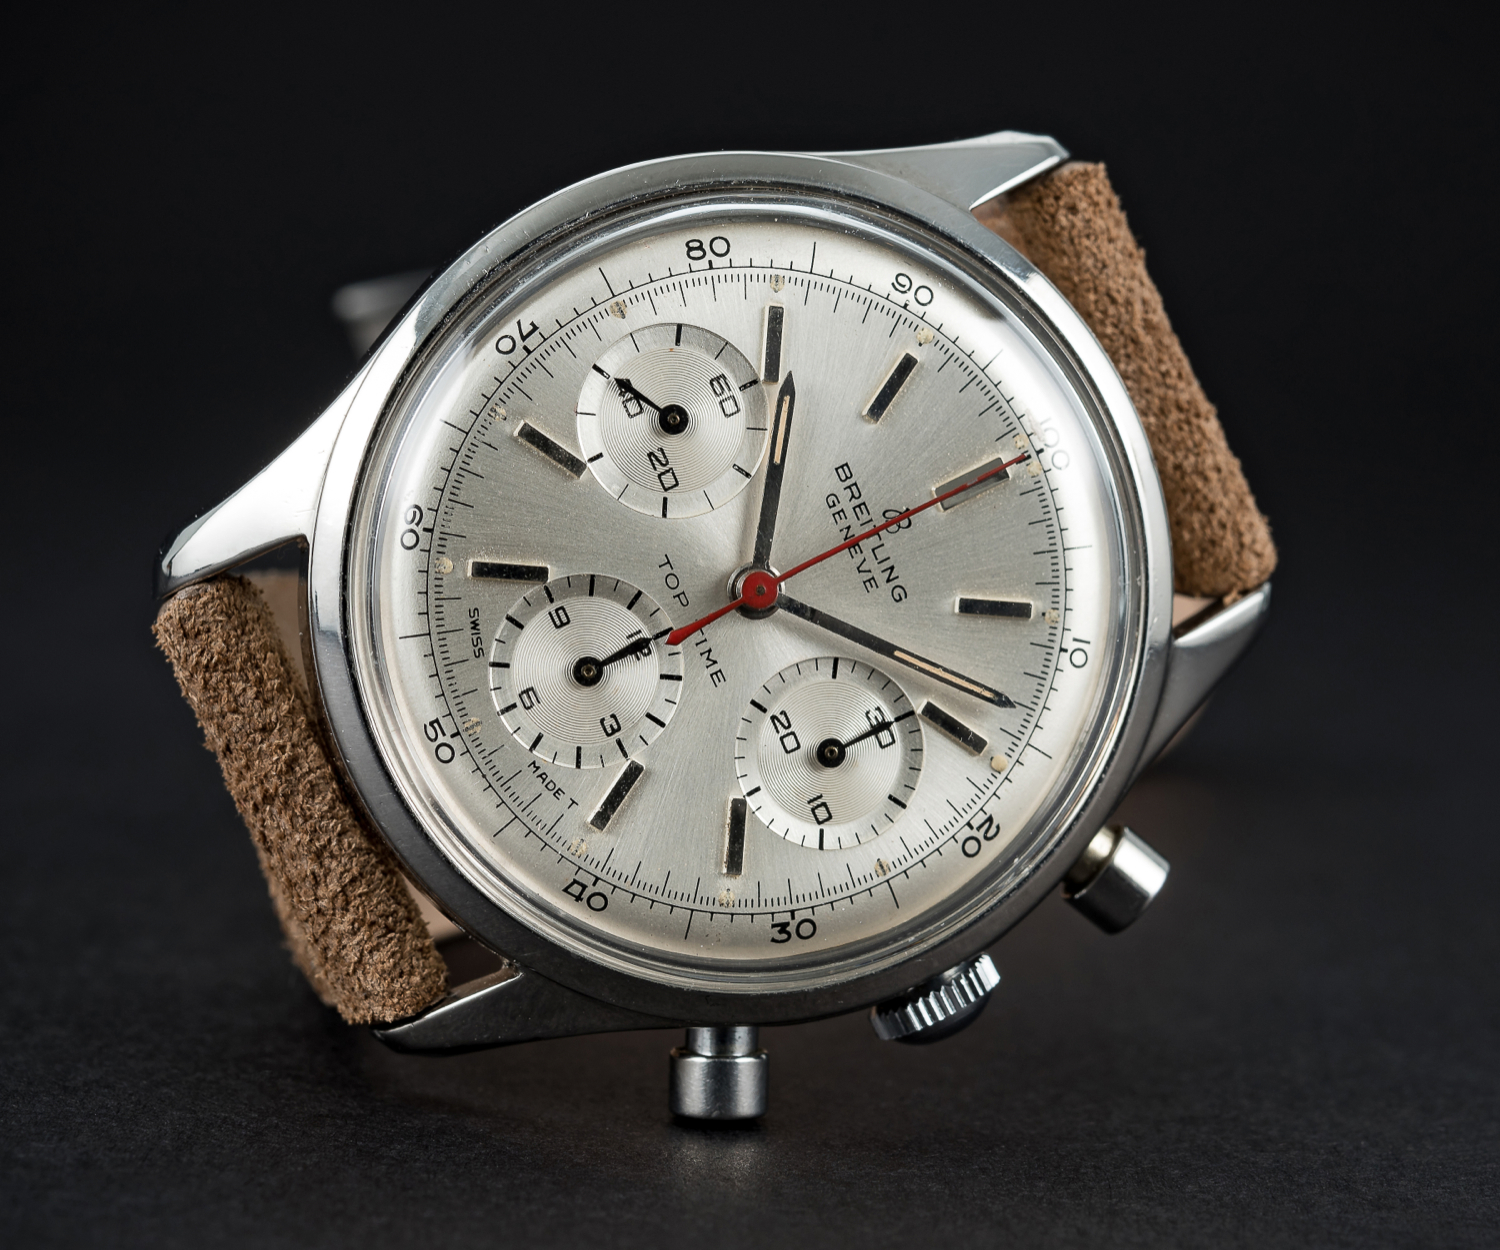 A VERY RARE GENTLEMAN'S STAINLESS STEEL BREITLING TOP TIME CHRONOGRAPH WRIST WATCH CIRCA 1964, - Image 2 of 10